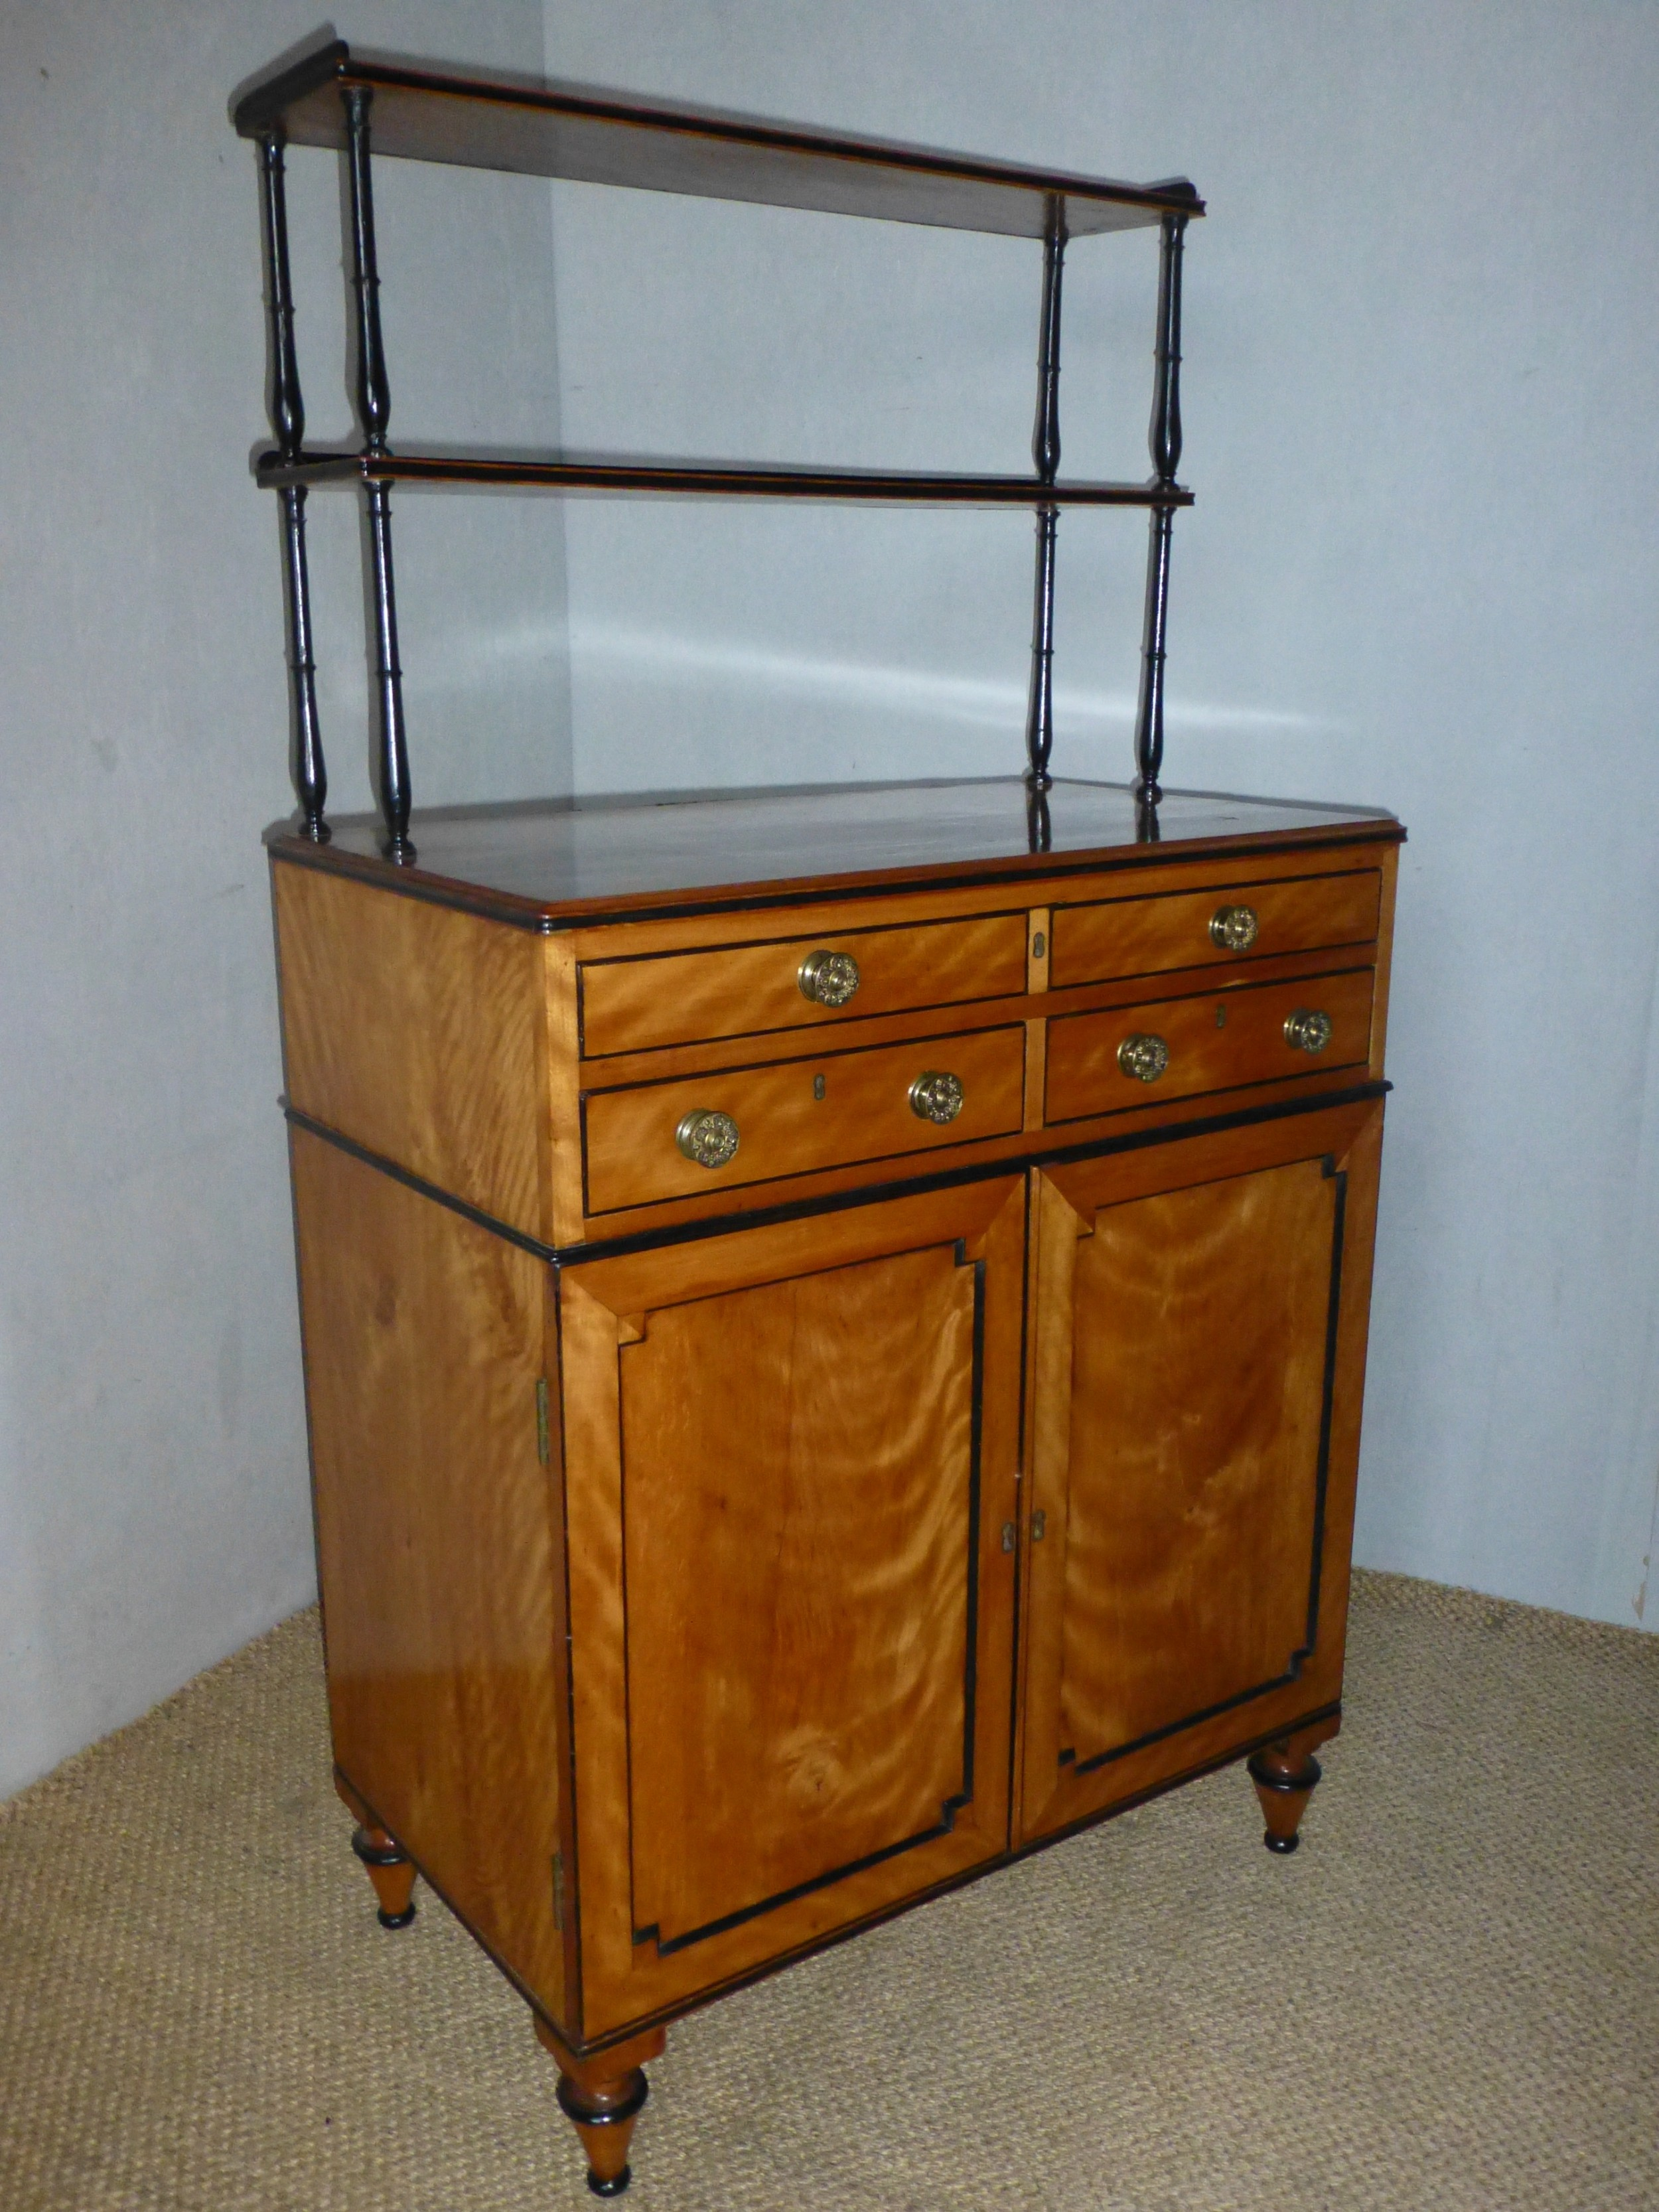 a superb quality regency sheraton period small satinwood secretaire chiffonier sideboard c1790